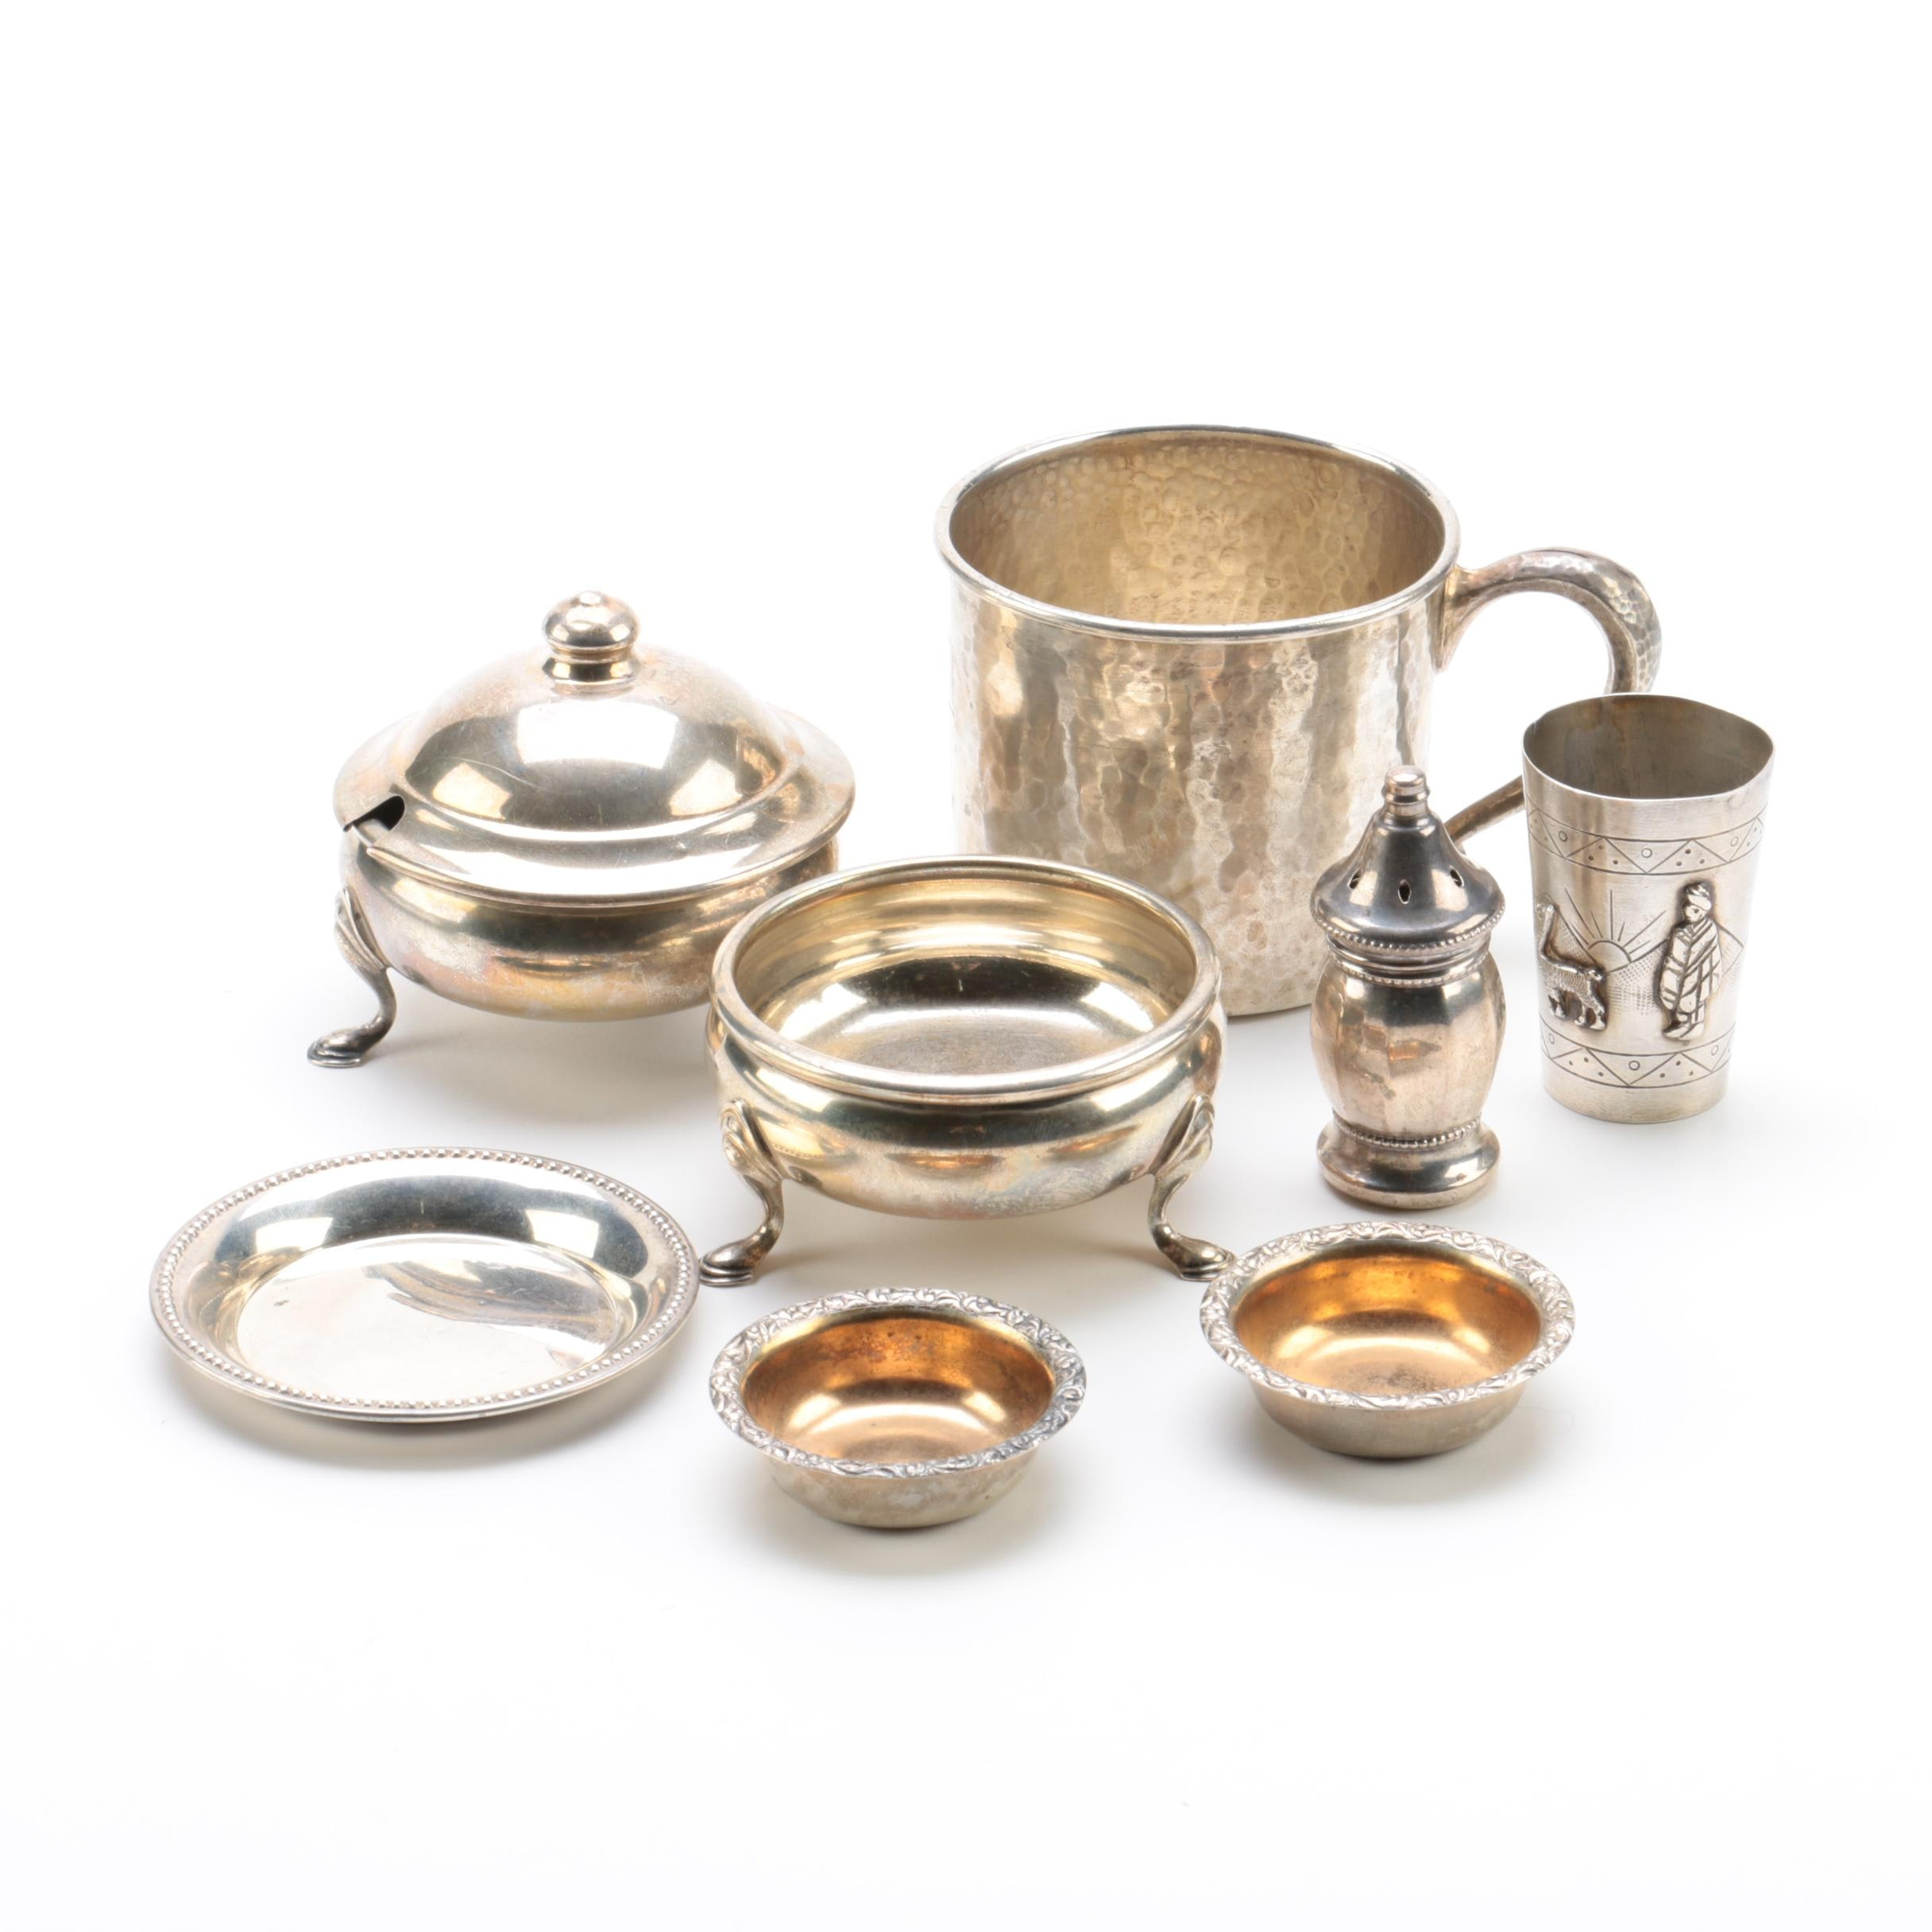 Watrous Hammered Mug with Other Sterling and 800 Silver Tableware